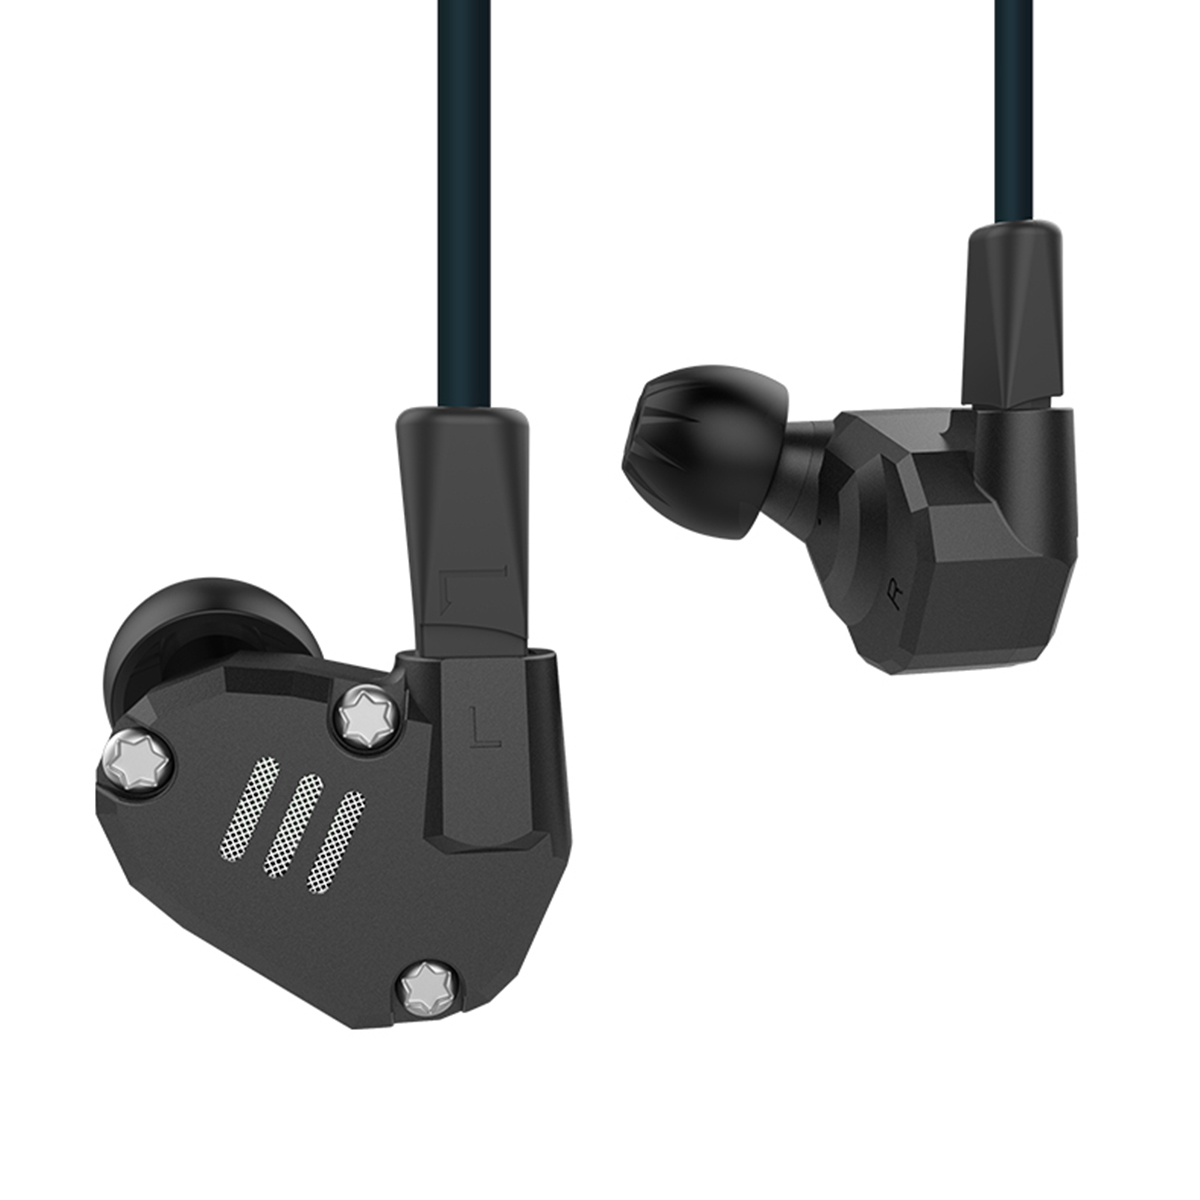 KZ ZS6 Eight Driver Earphone 2DD+2BA Dynamic And Armature In Ear HIFI Stereo Sport Headset Detachable Bluetooth Upgrade Cable kz zs6 best quality sport earphone metal hifi headphone 8 drivers dynamic armature hybrid amazing sound portable theatre cinema